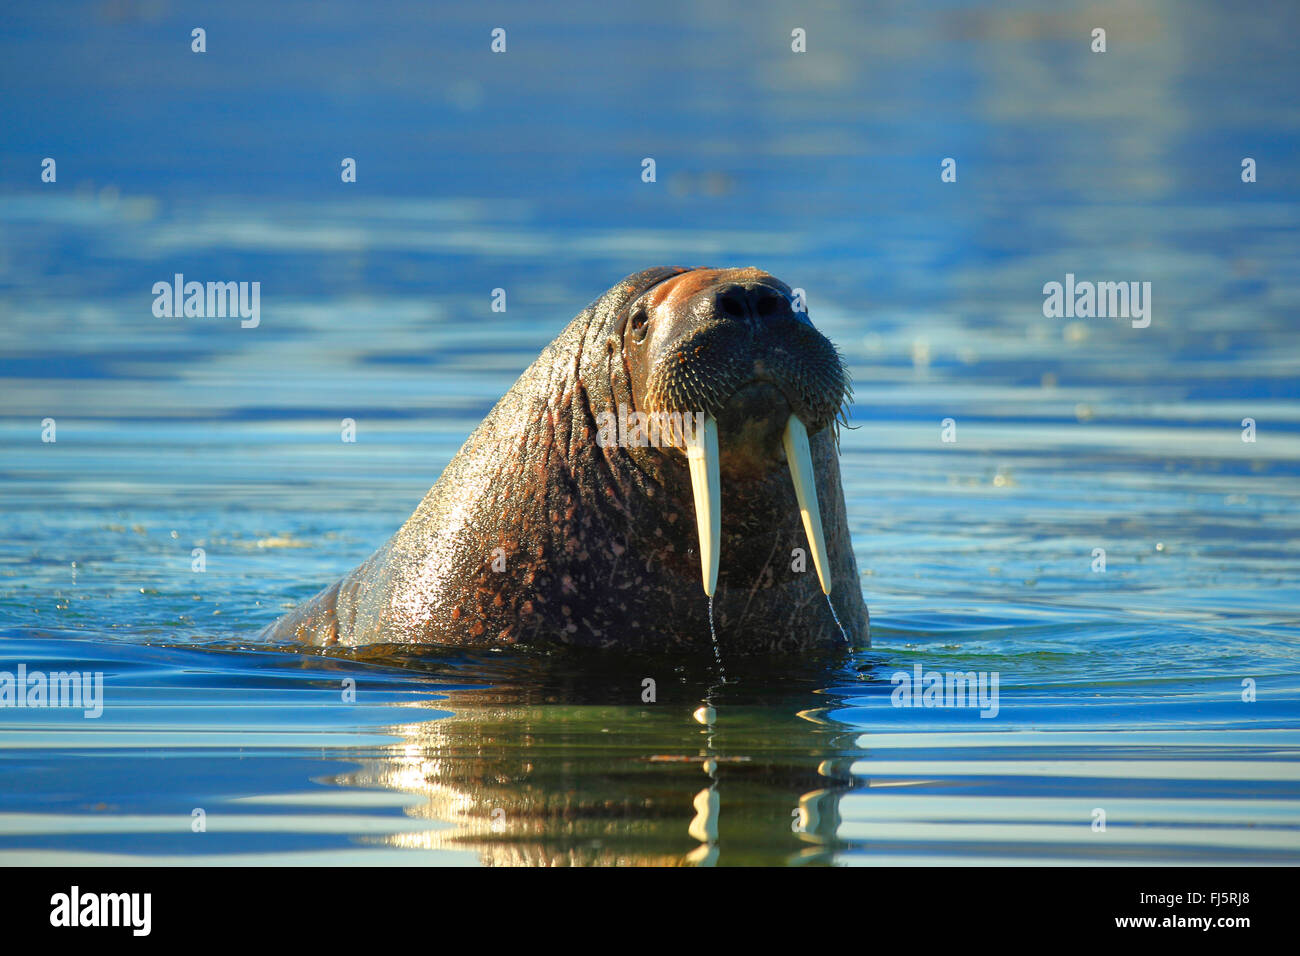 walrus (Odobenus rosmarus), swimming, Norway, Svalbard - Stock Image